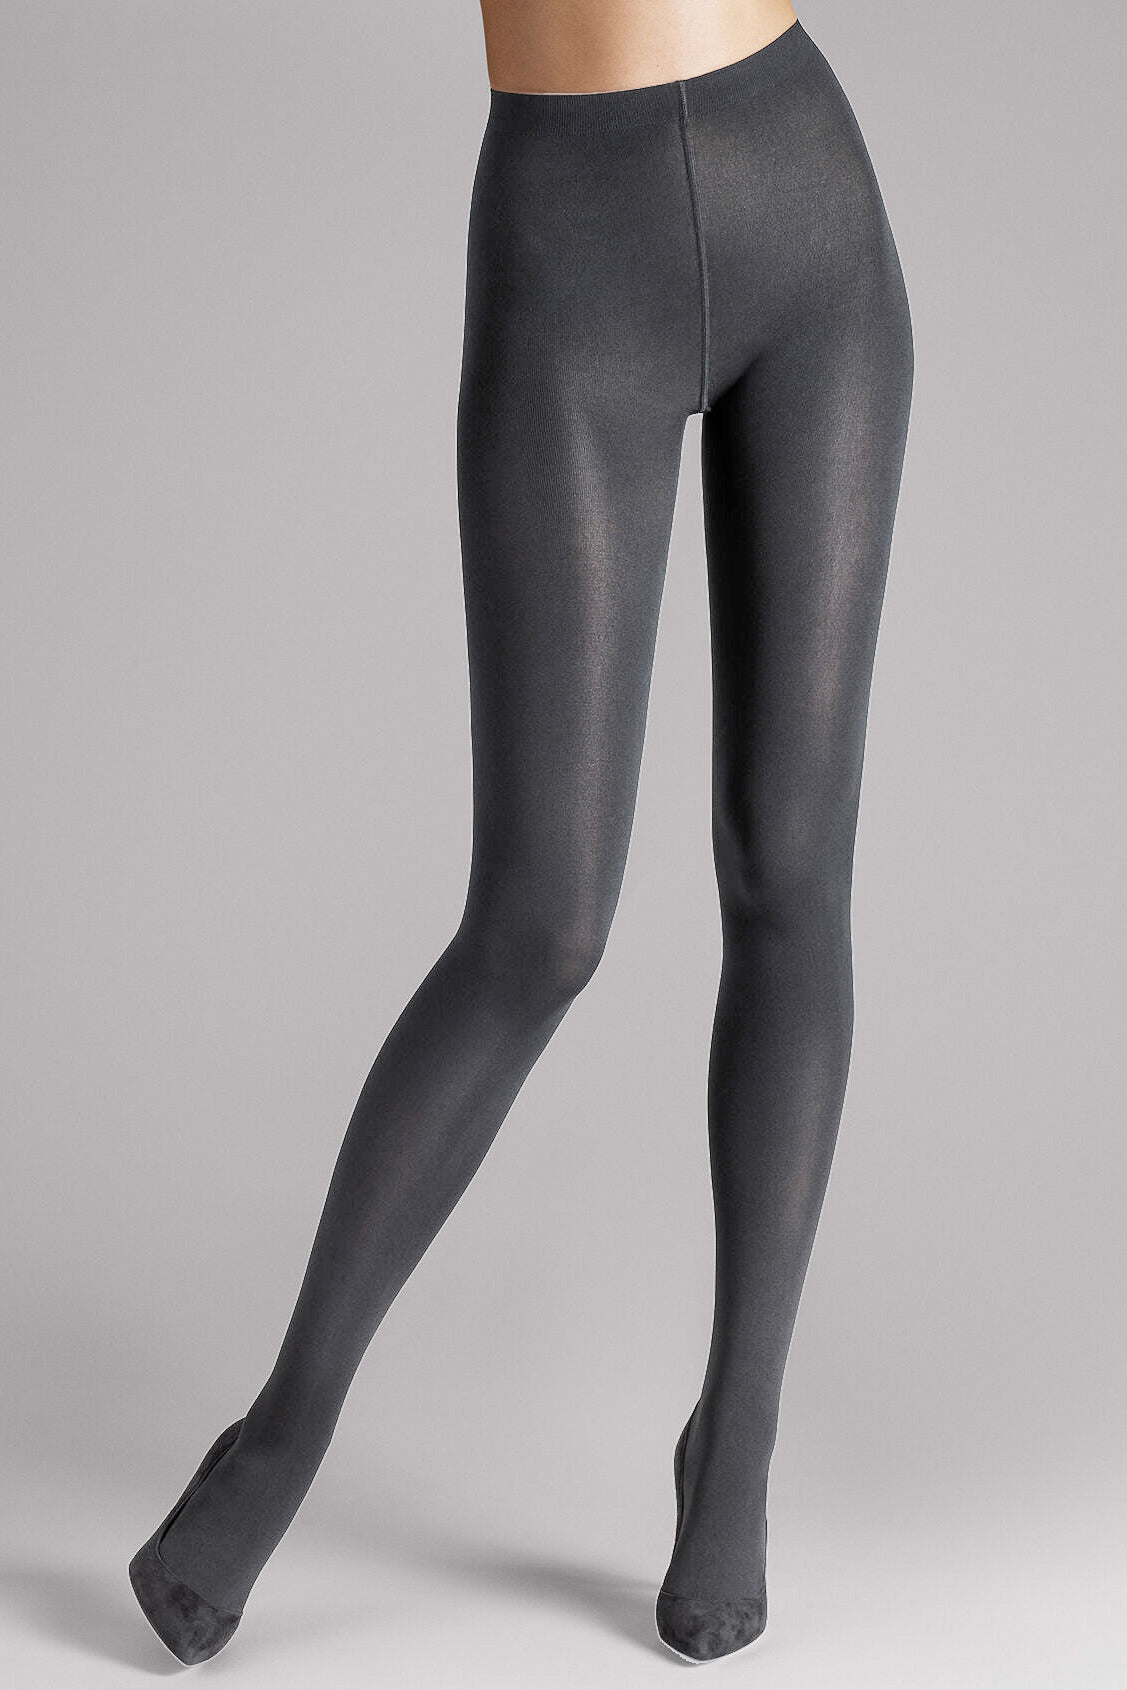 Mat Opaque 80 Tights in Anthracite